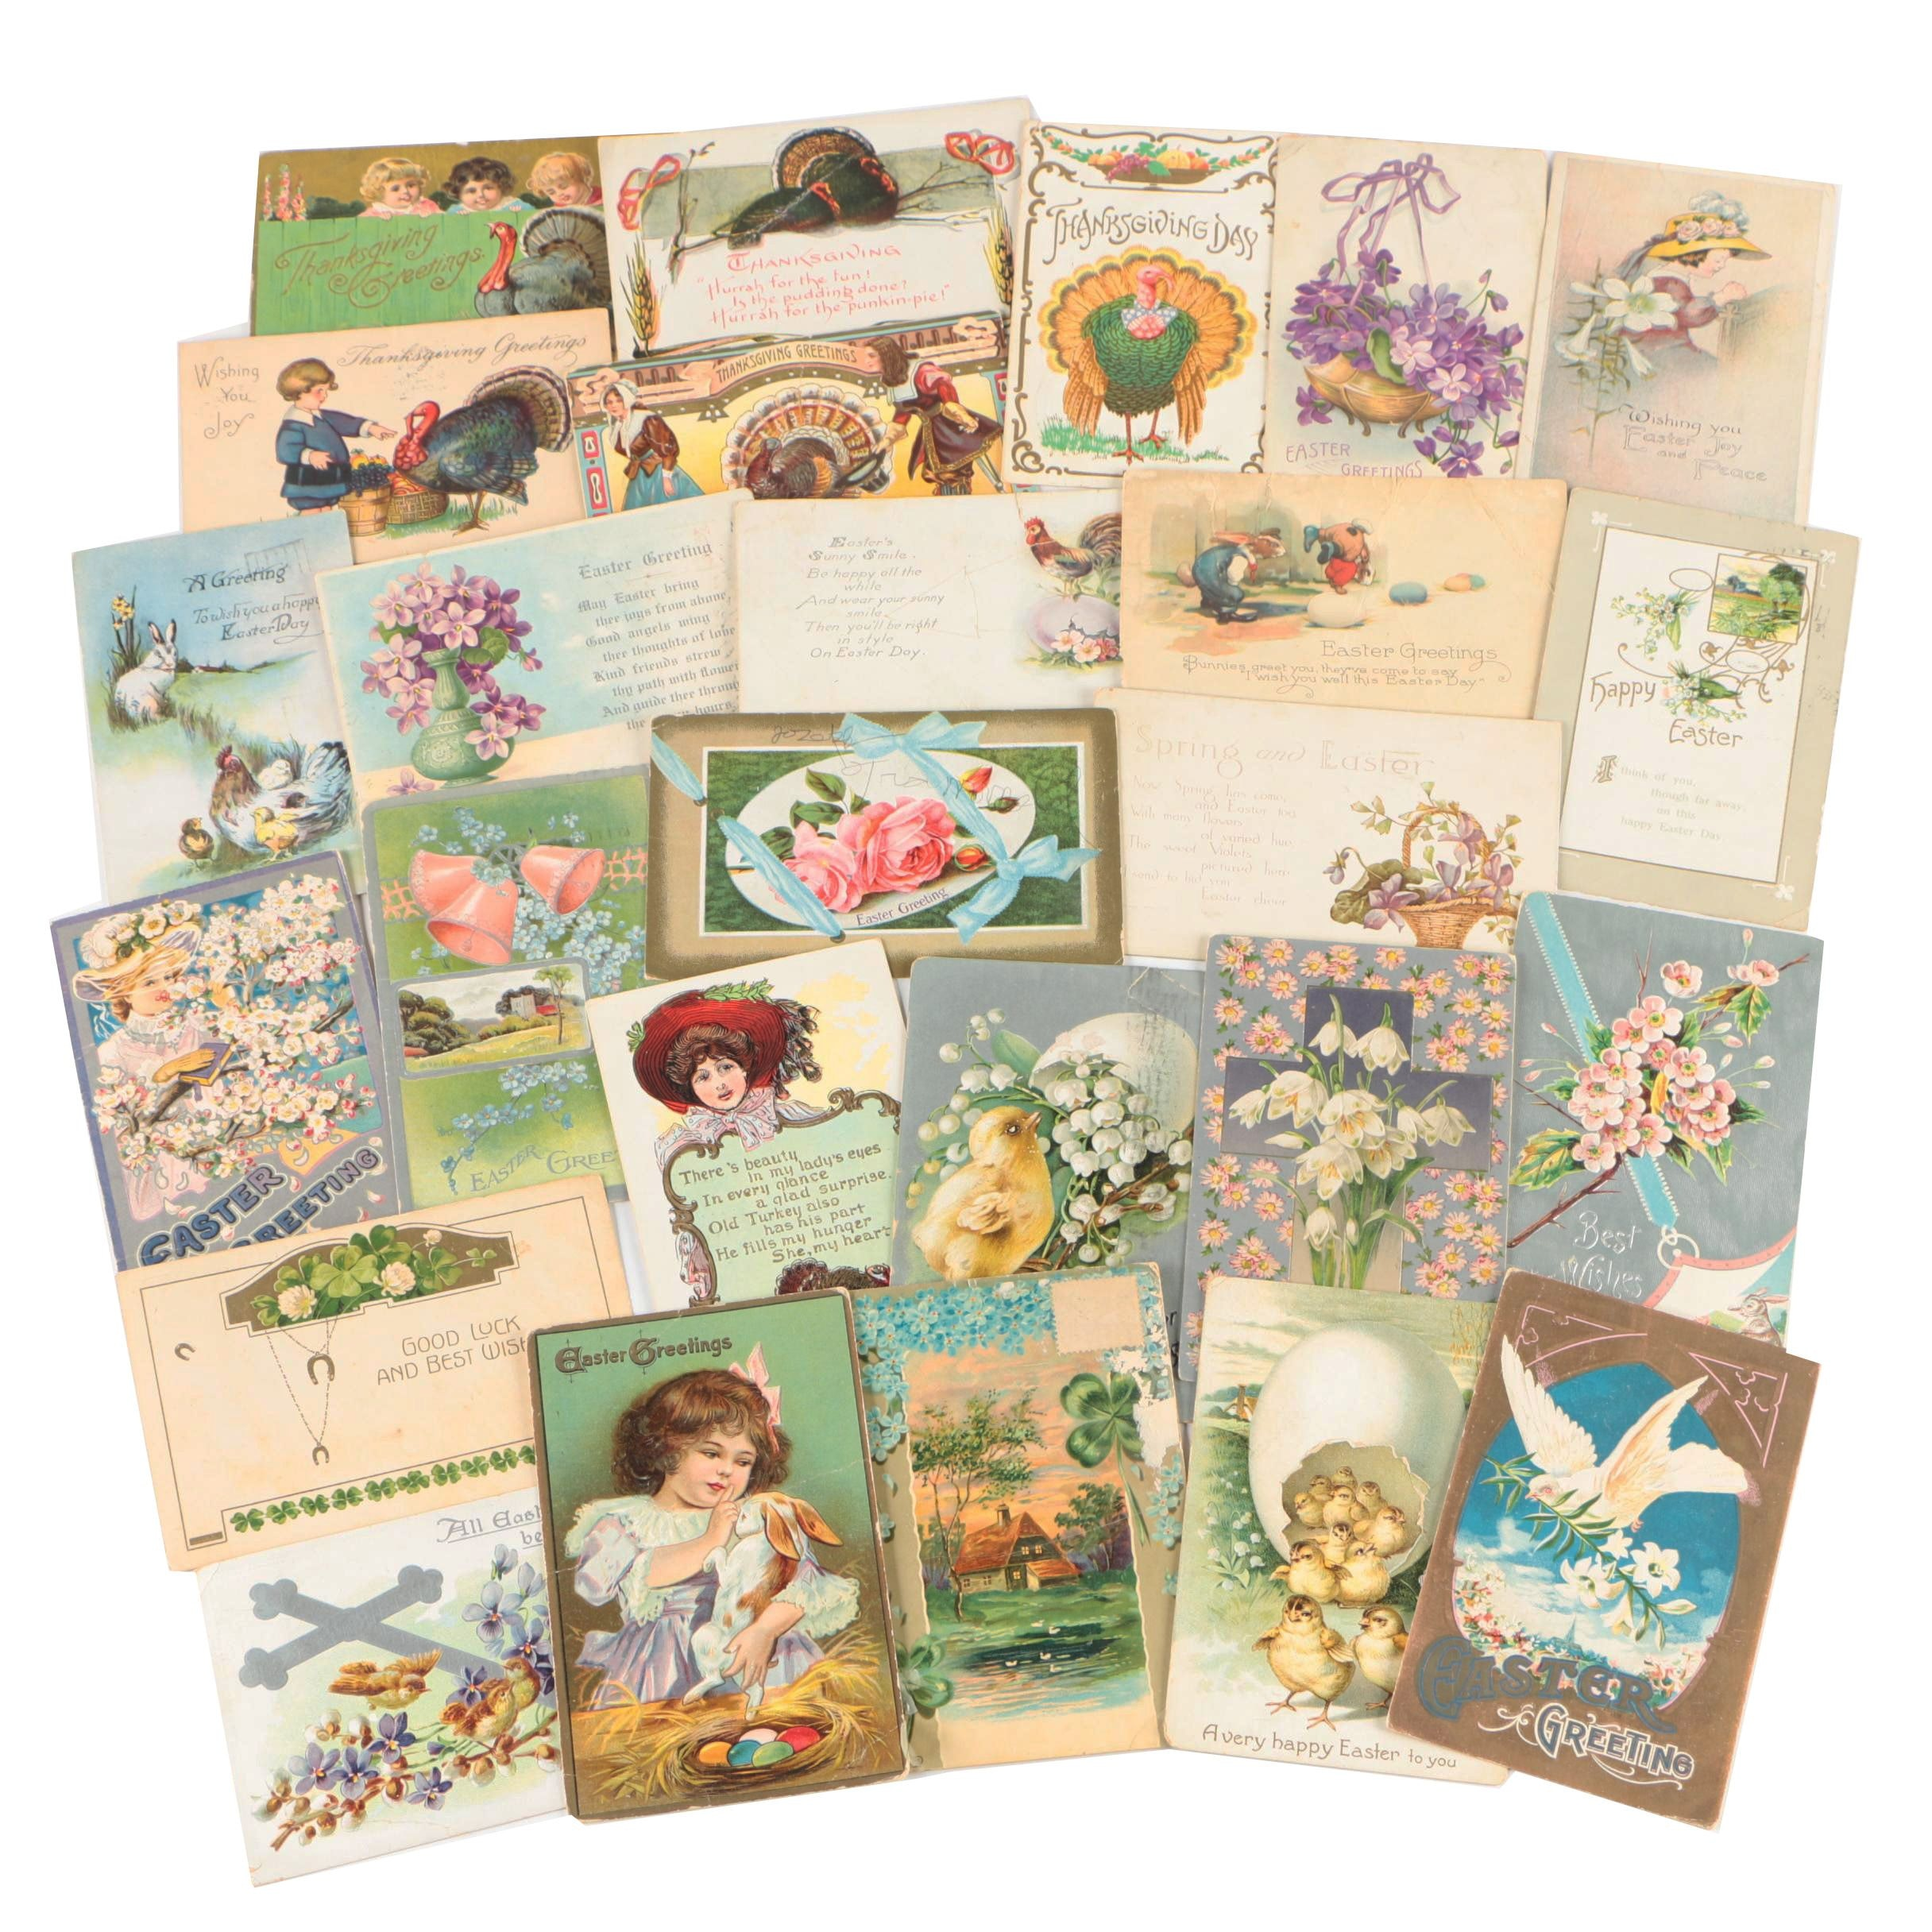 Holiday Postcards Including Easter and More, 1908 - 1923